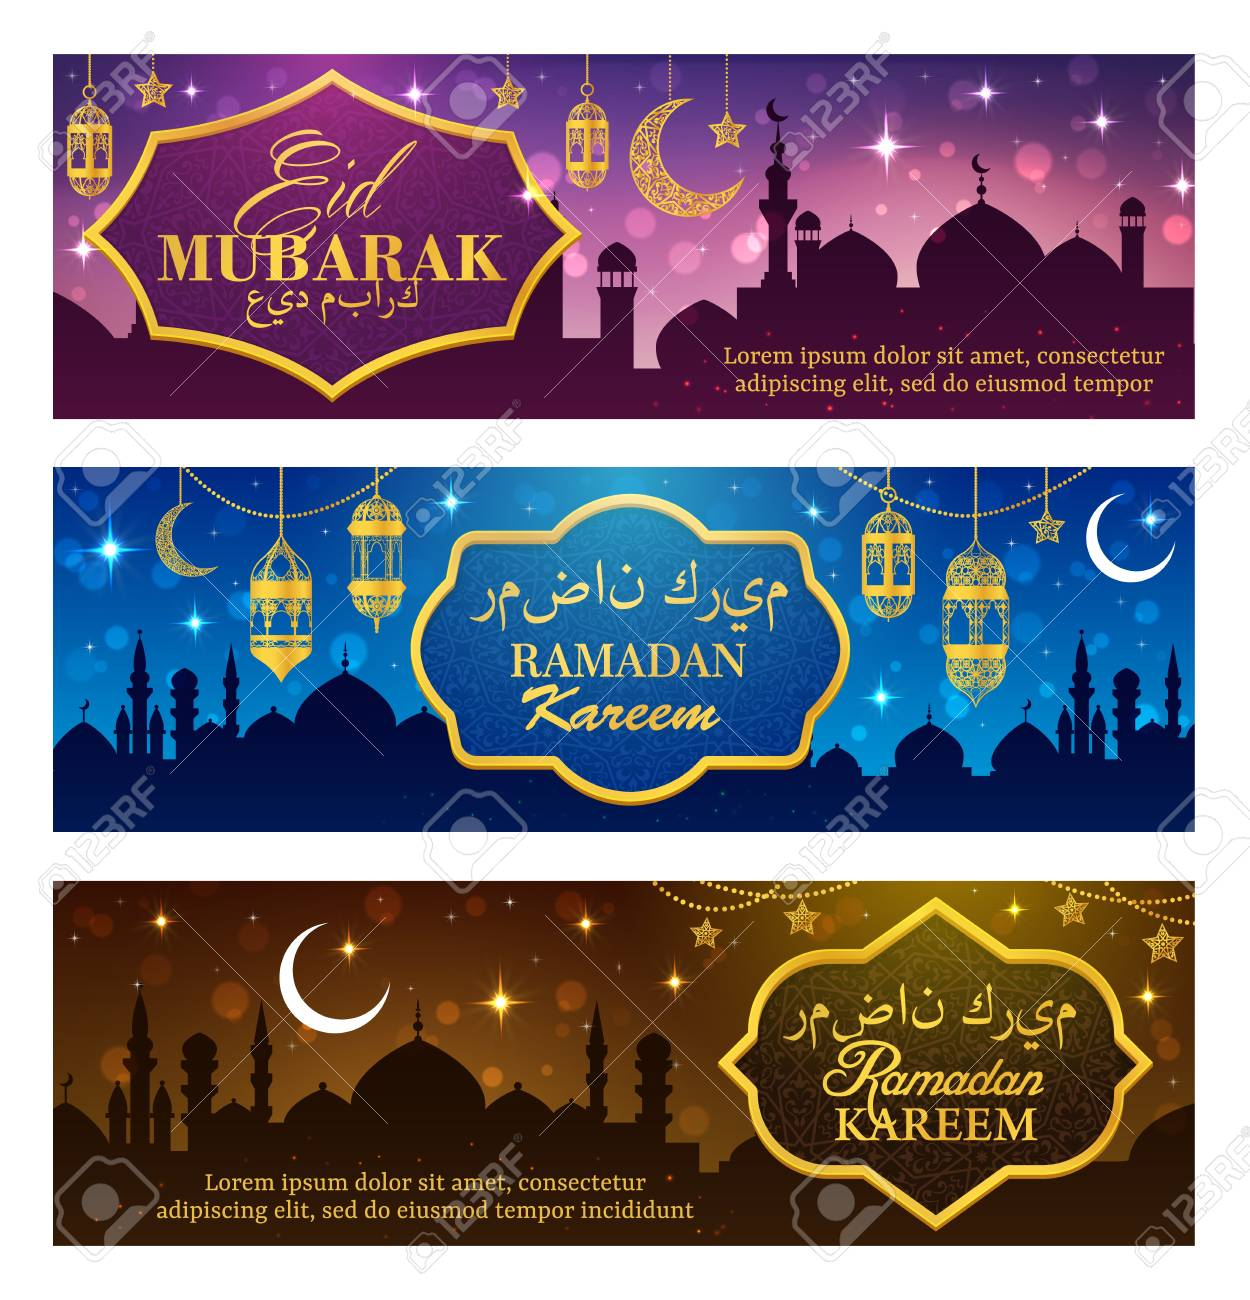 Ramadan Kareem Islam religion holiday vector design with Eid Mubarak greeting wishes calligraphy. Muslim mosques with arabic lanterns, golden crescent moon and star, decorated with arabian ornaments - 121133835